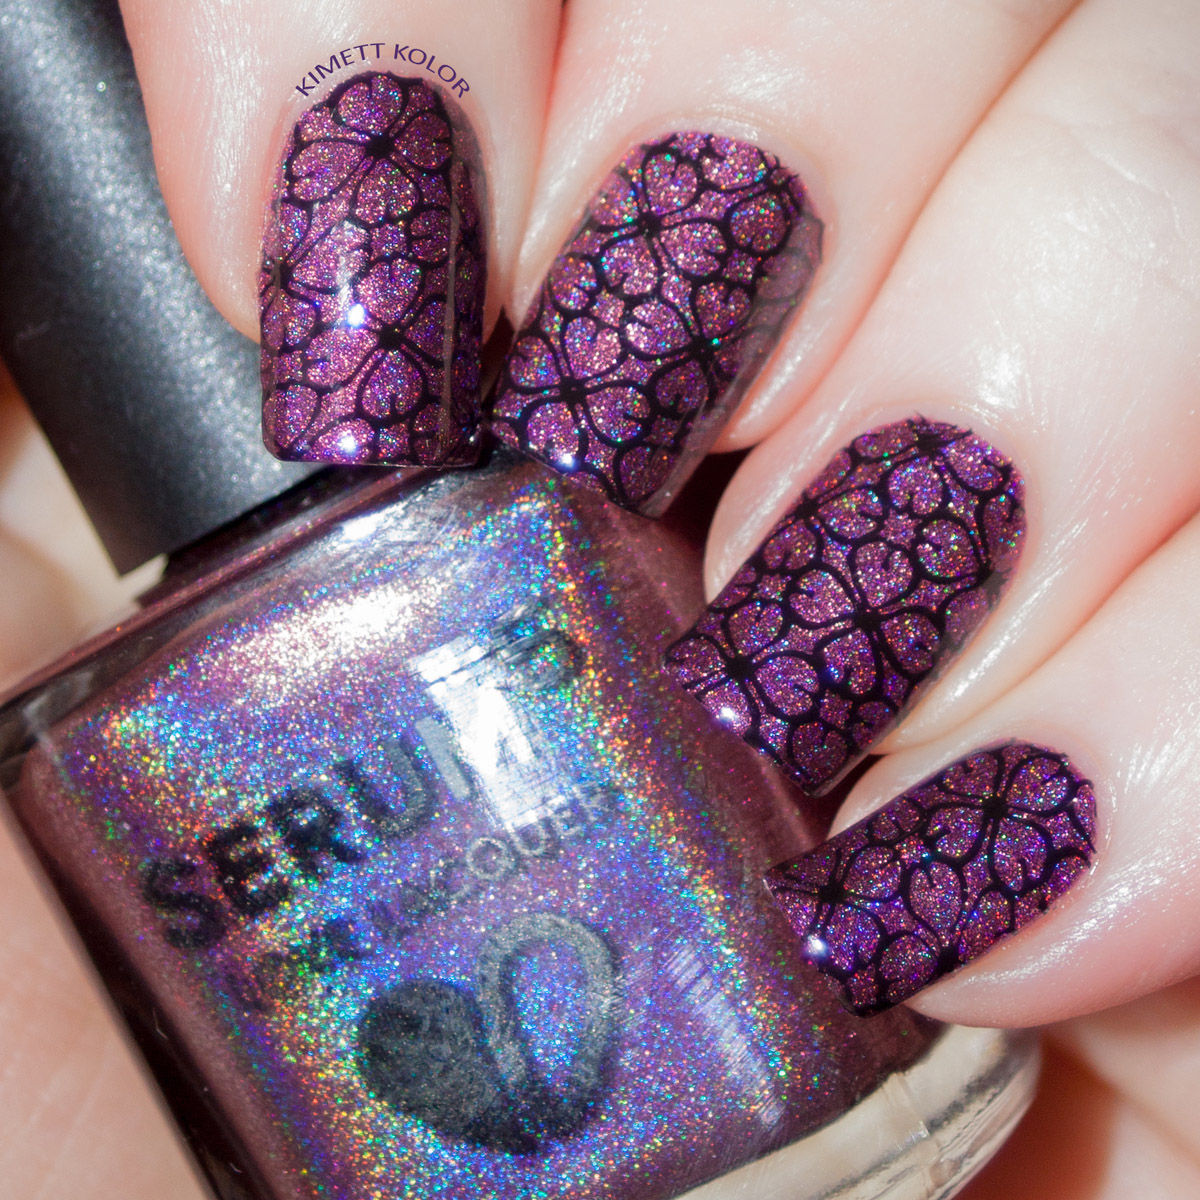 KimettKolor Simple Stamping Nail Art with Plum Luck and FabUrNails